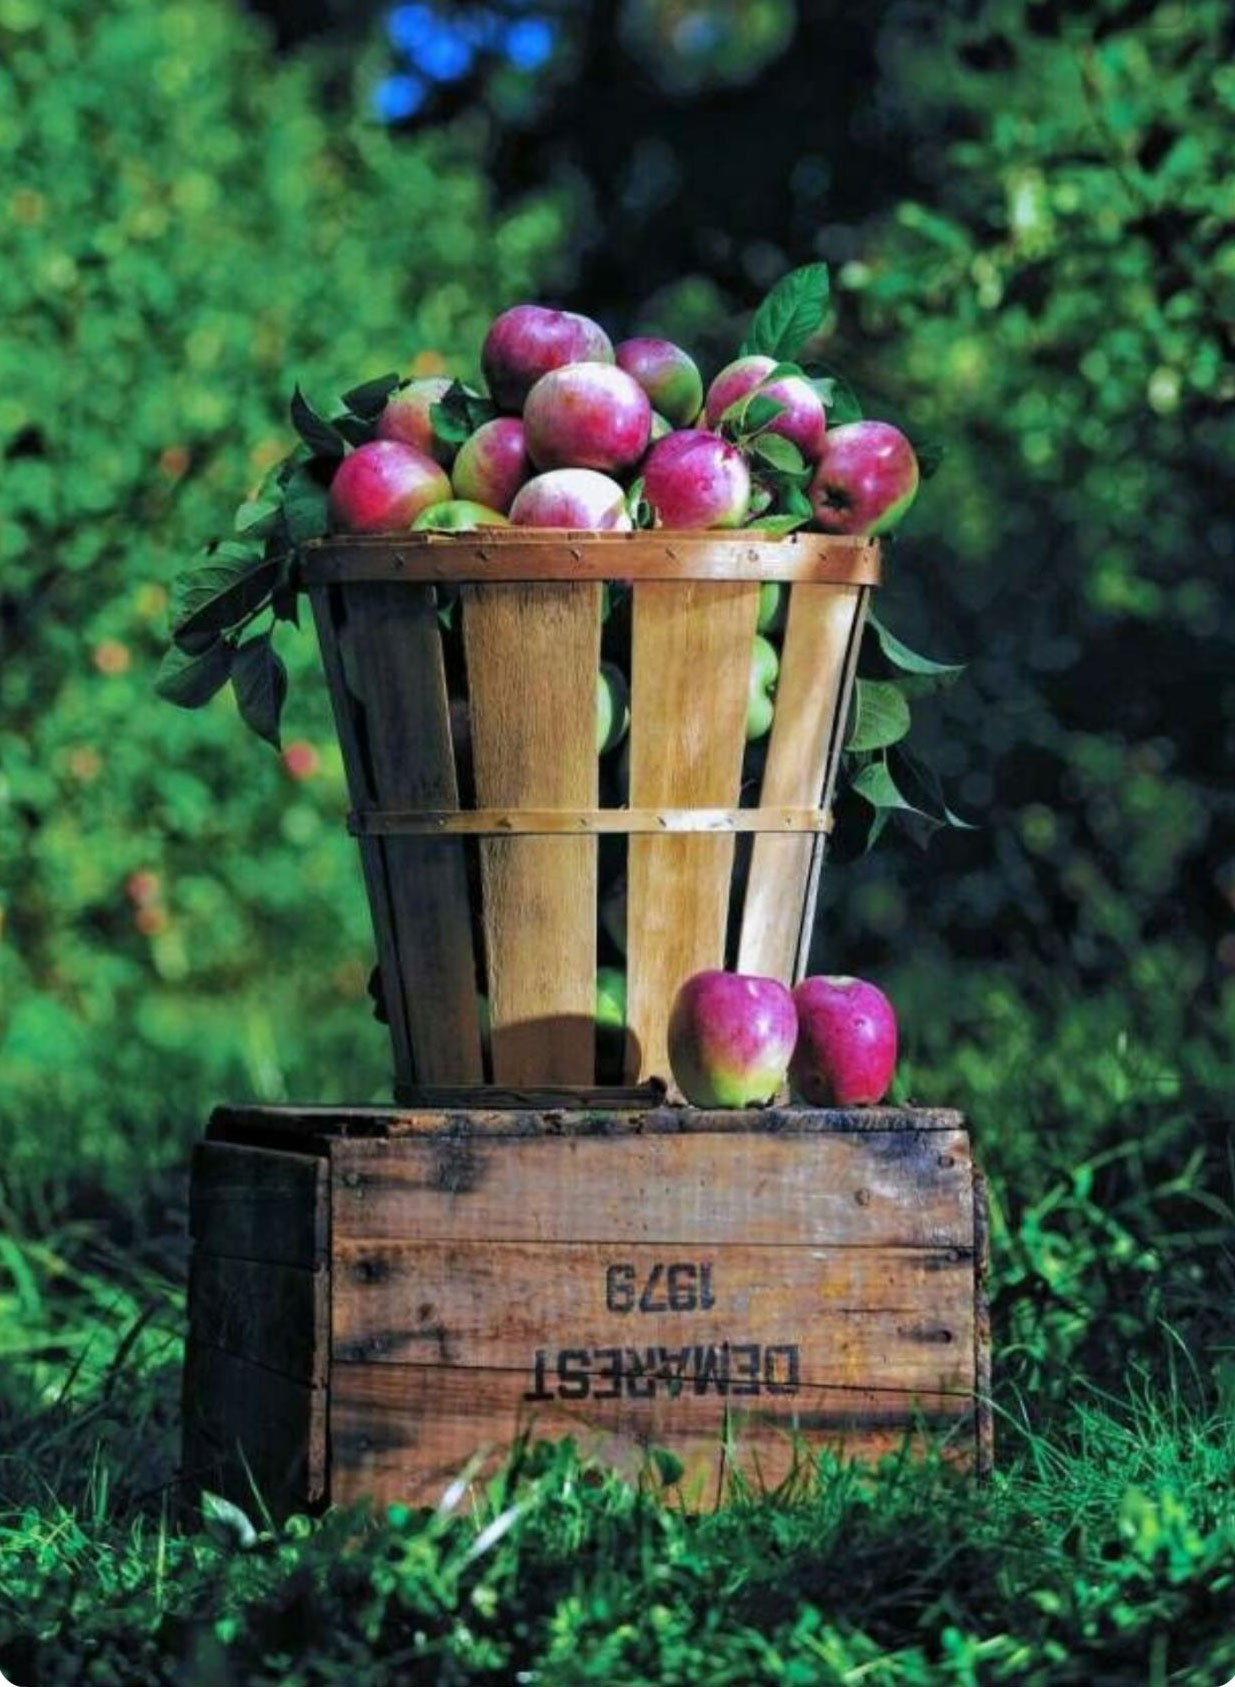 Demarest Farms Named one of the Best Places to Pick Apples in US